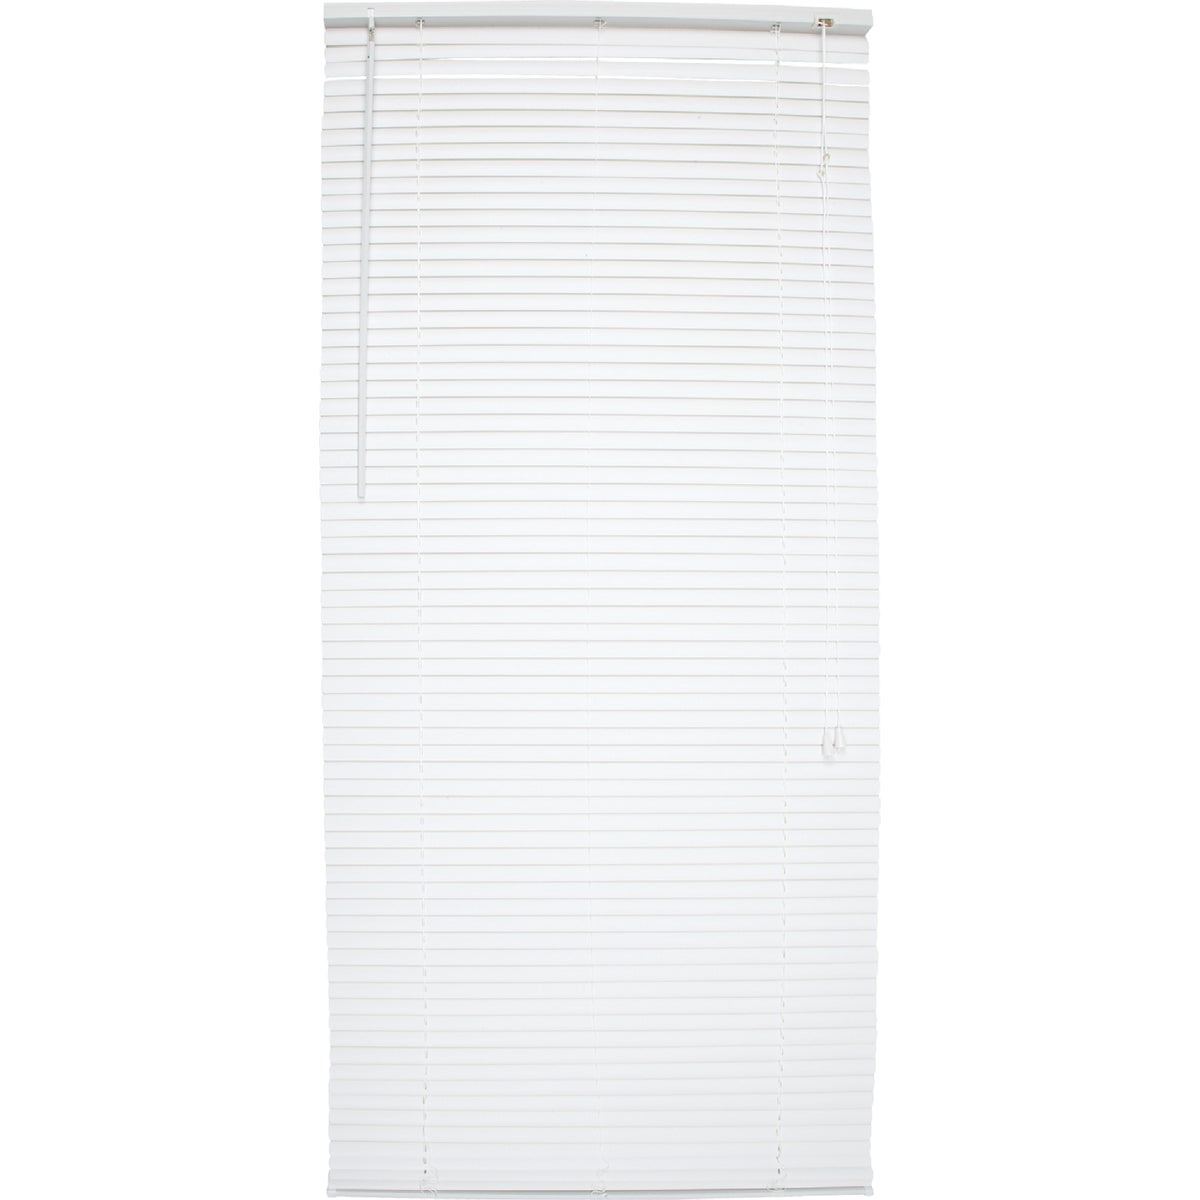 58X64 WHITE MINI BLIND - 616095 by Lotus Wind Incom